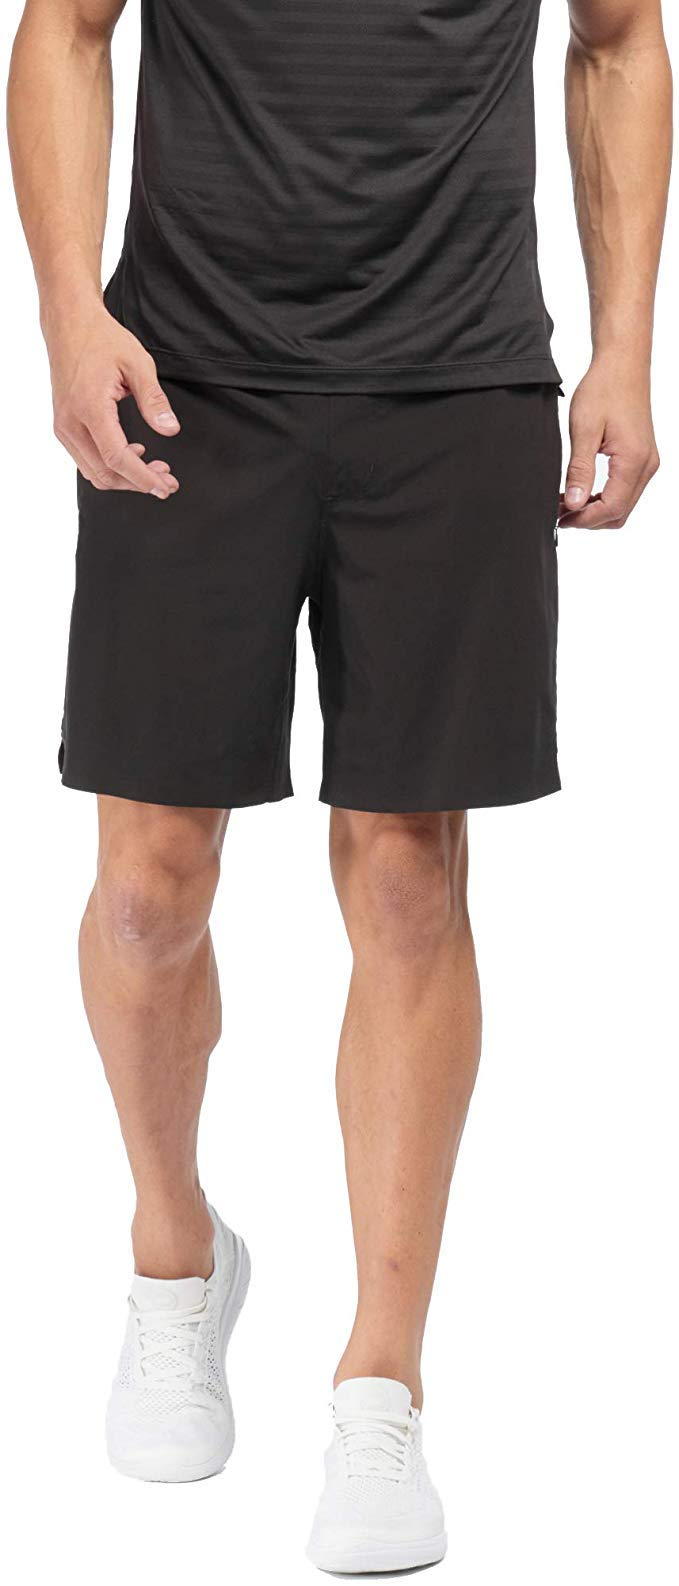 """Rhone Mens 7"""" Swift Running Short Lined Perforated Quick-Drying Athletic Workout Performance Shorts"""